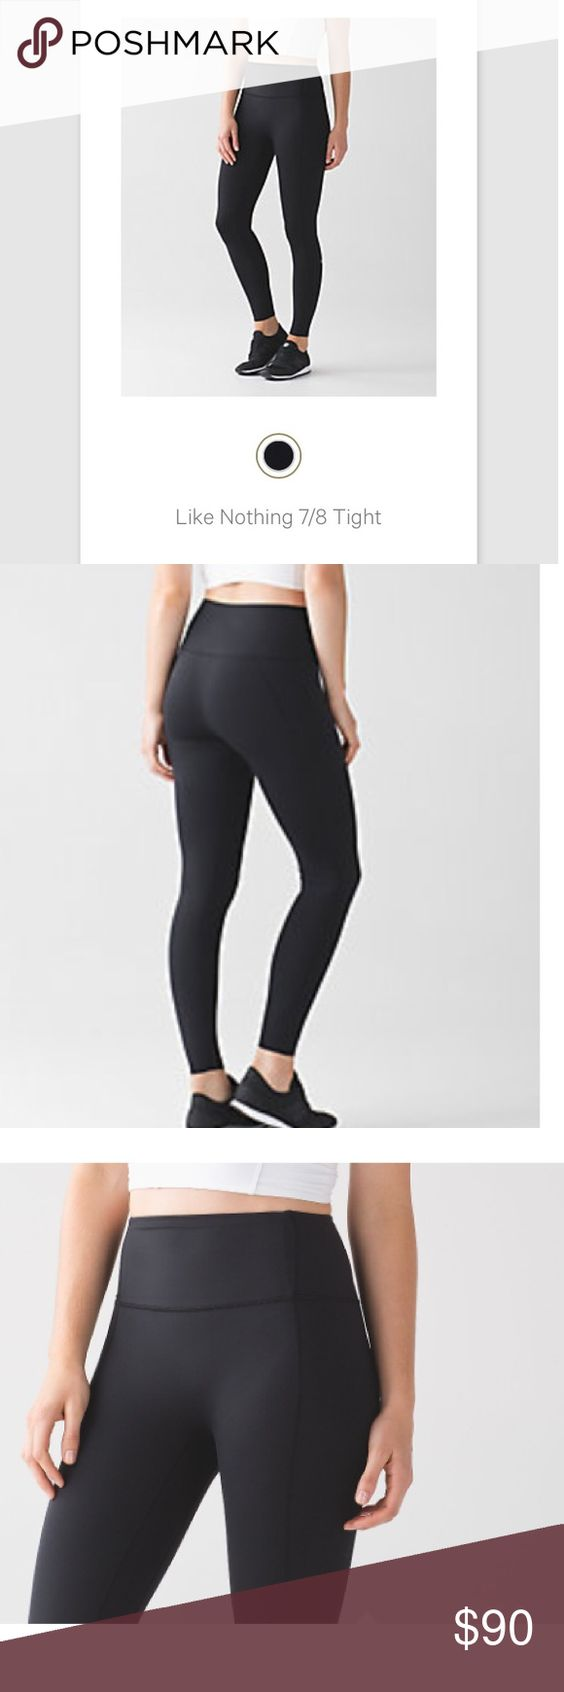 lululemon yoga pants too revealing pictures